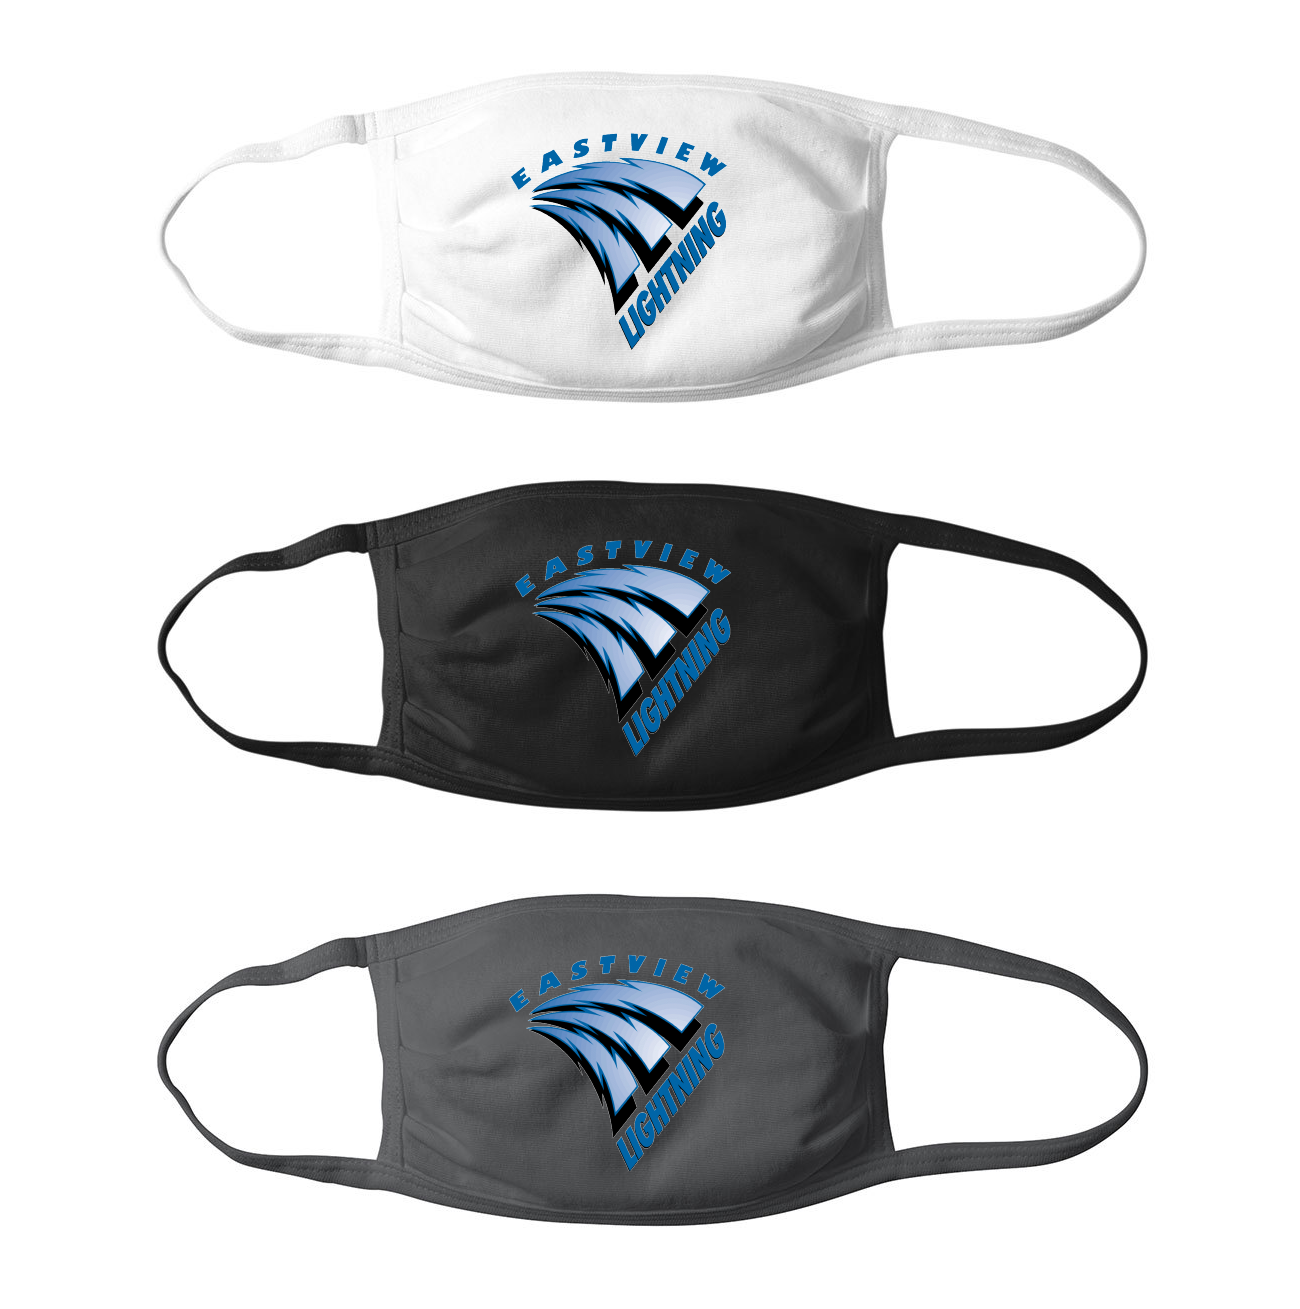 Eastview Lightning Mask - Adult